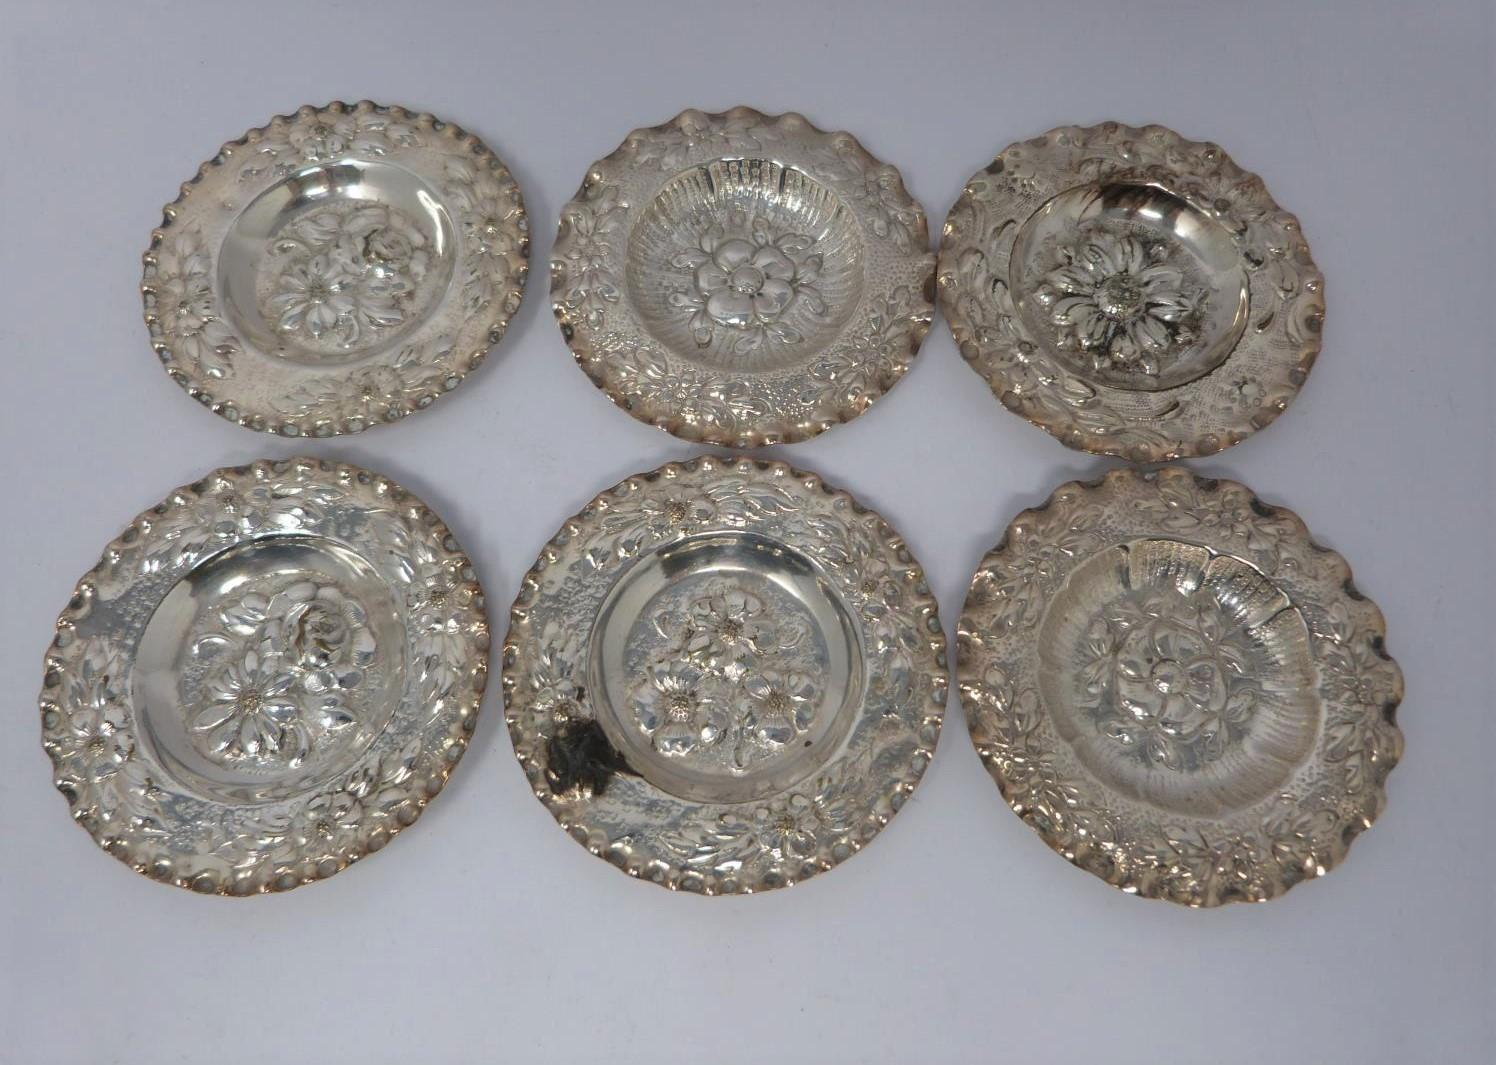 Three silver ash trays, a silver lidded box, silver salt and silver plated floral dishes, box: - Image 5 of 7